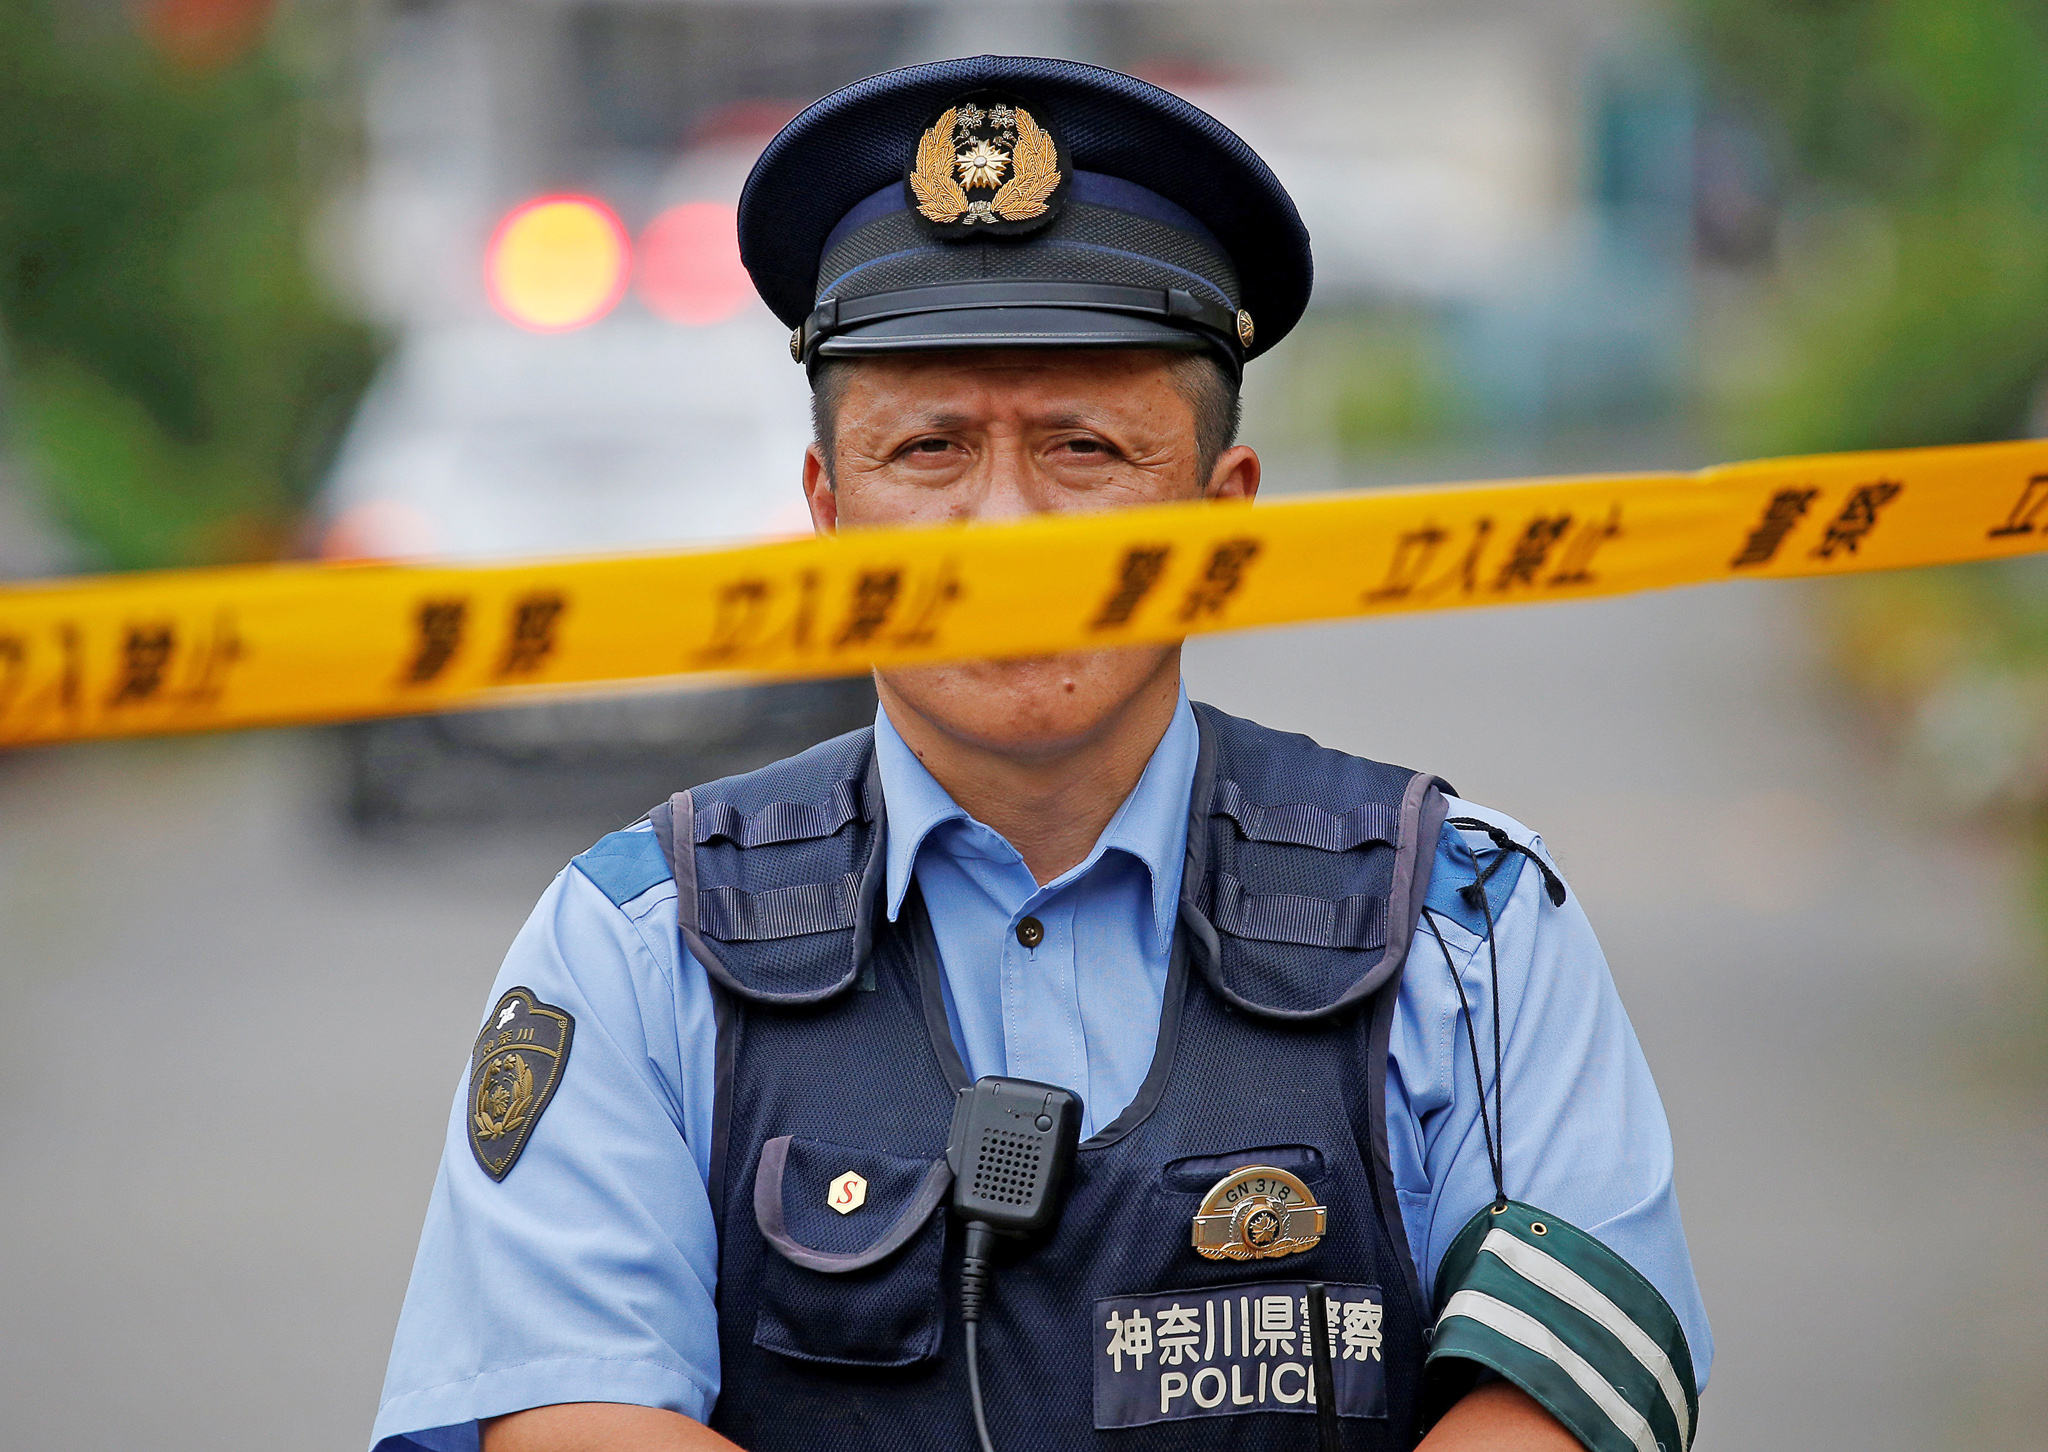 A police officer stands guard near a facility for the disabled, where a deadly attack by a knife-wielding man took place, in Sagamihara, Kanagawa prefecture, Japan, July 26, 2016